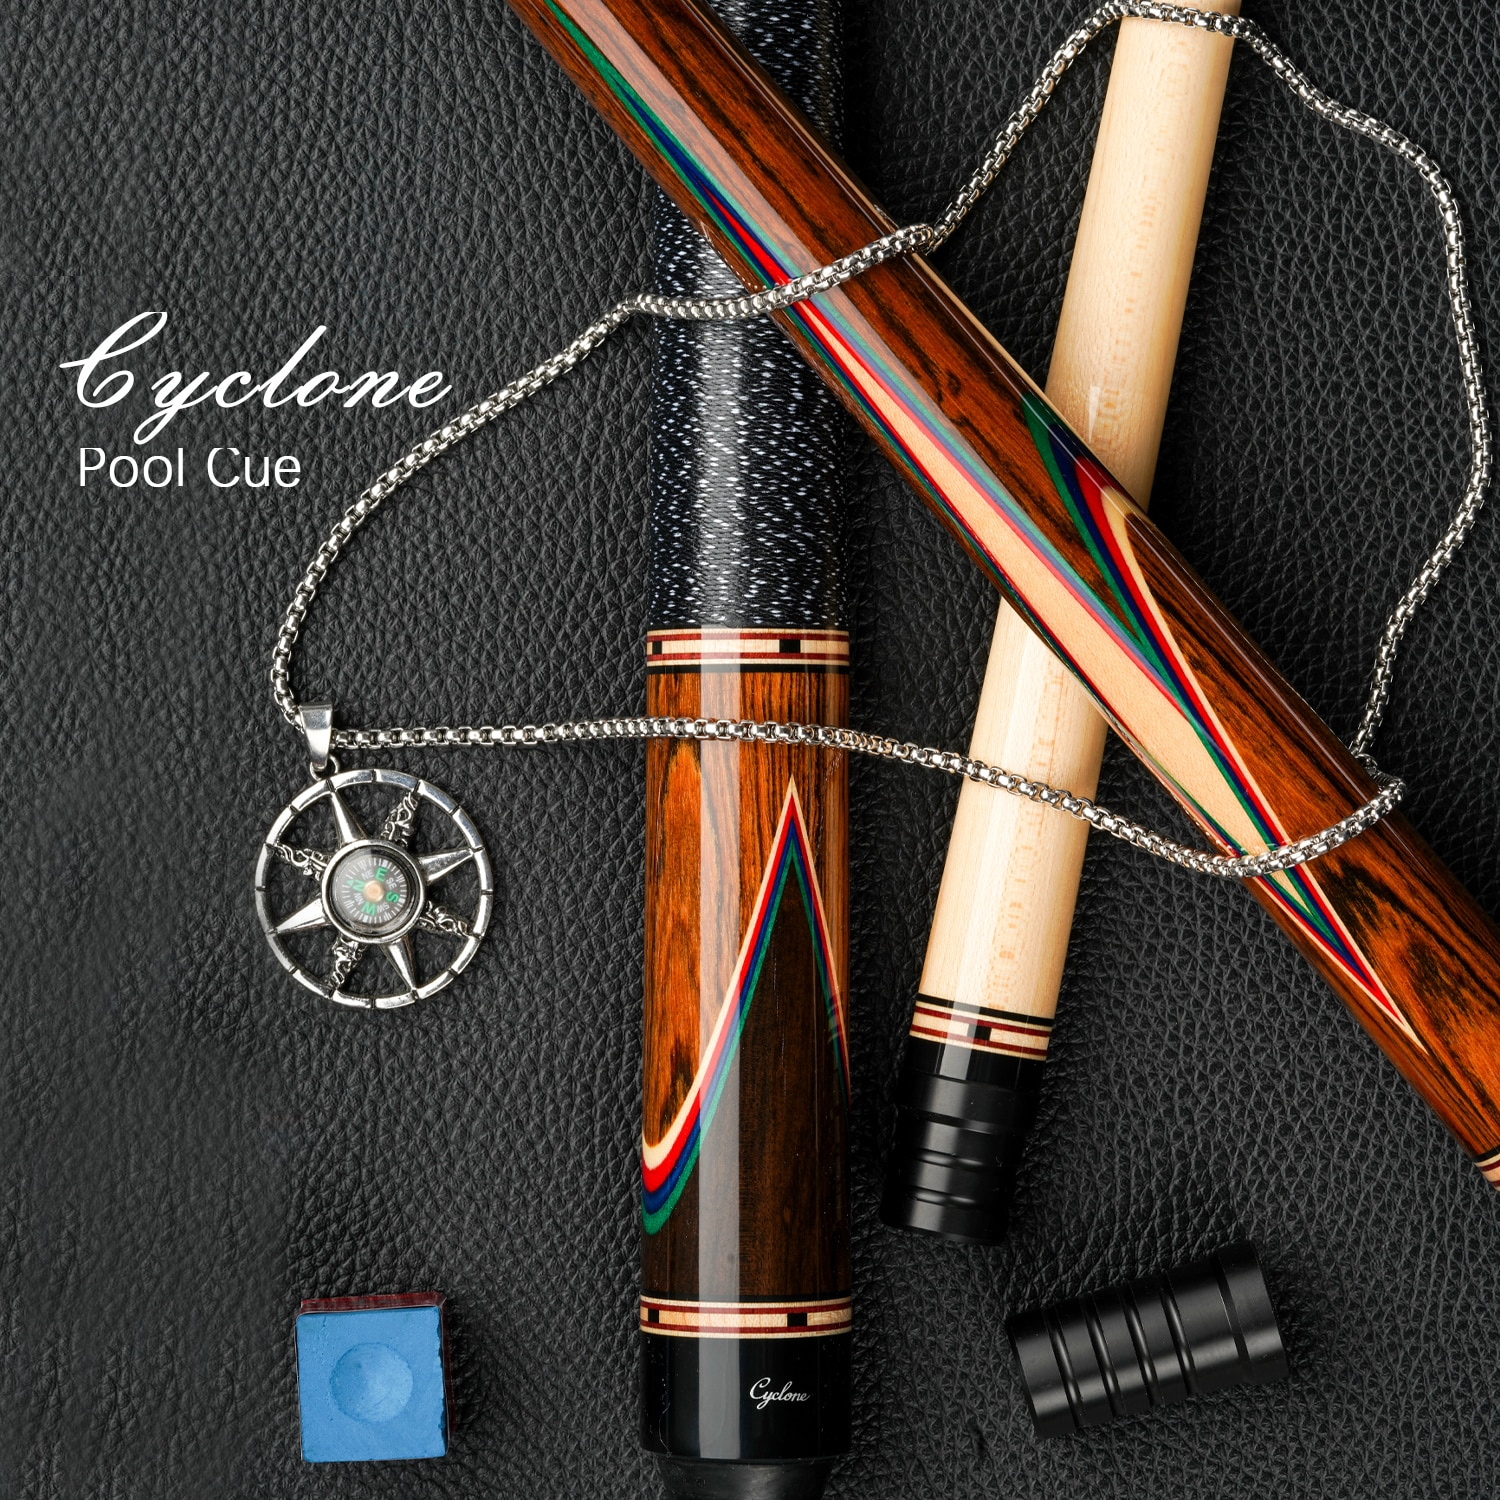 Cyclone-7 Billiard Cue Stick Inlaid Carving Cue 13mm Tip 3*8/8 Radial Pin Handmade Professional Cue By FURY Factory Manufacture